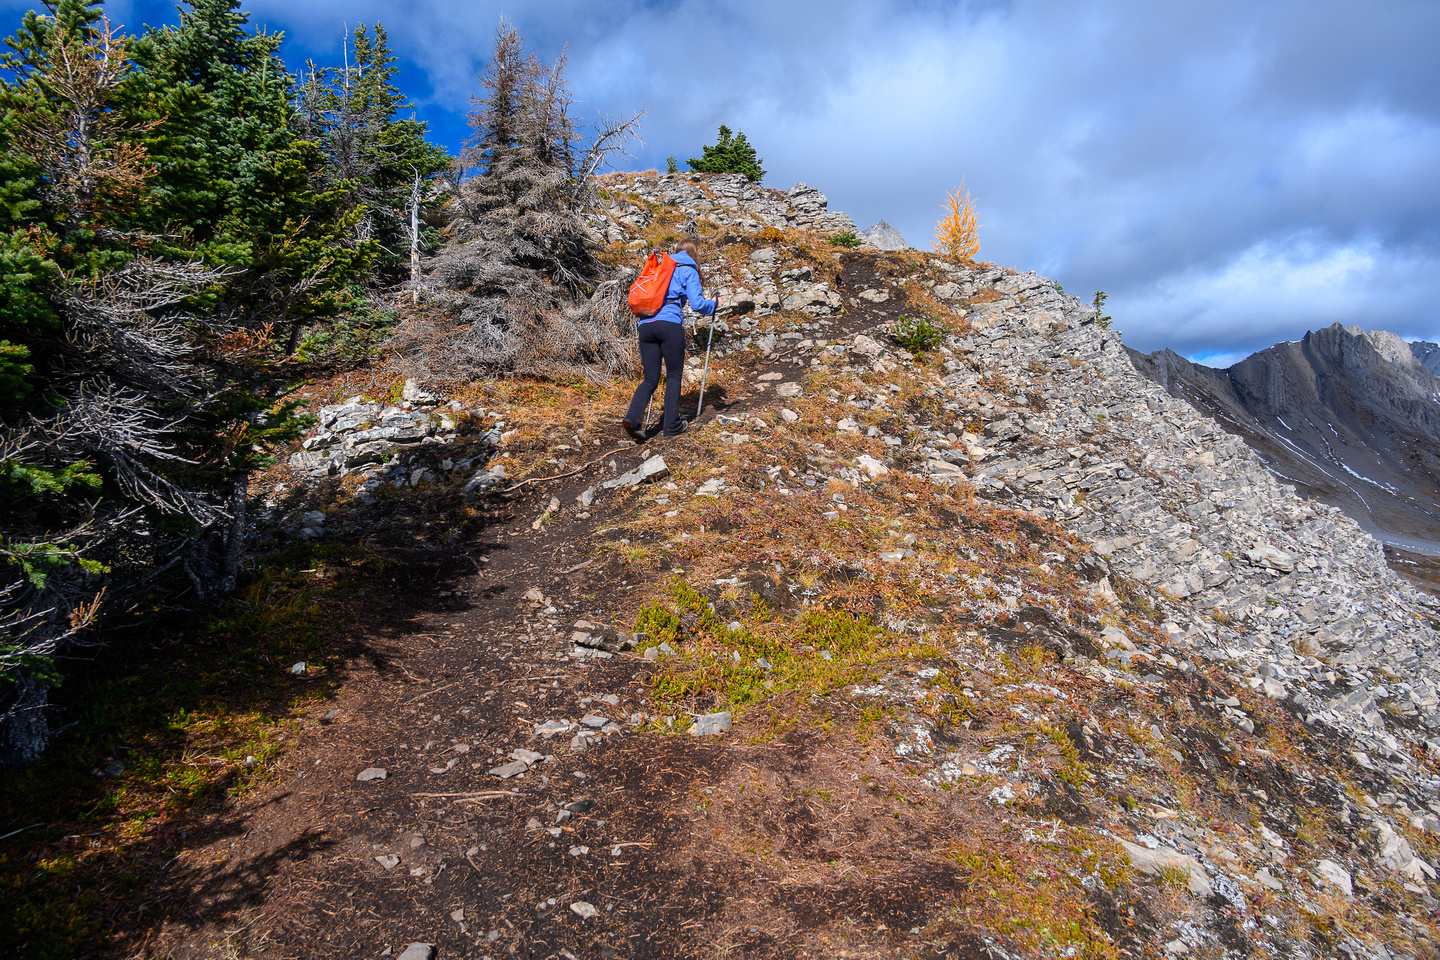 Hiking up the muddy trail on the lower SE ridge of Smutwood.